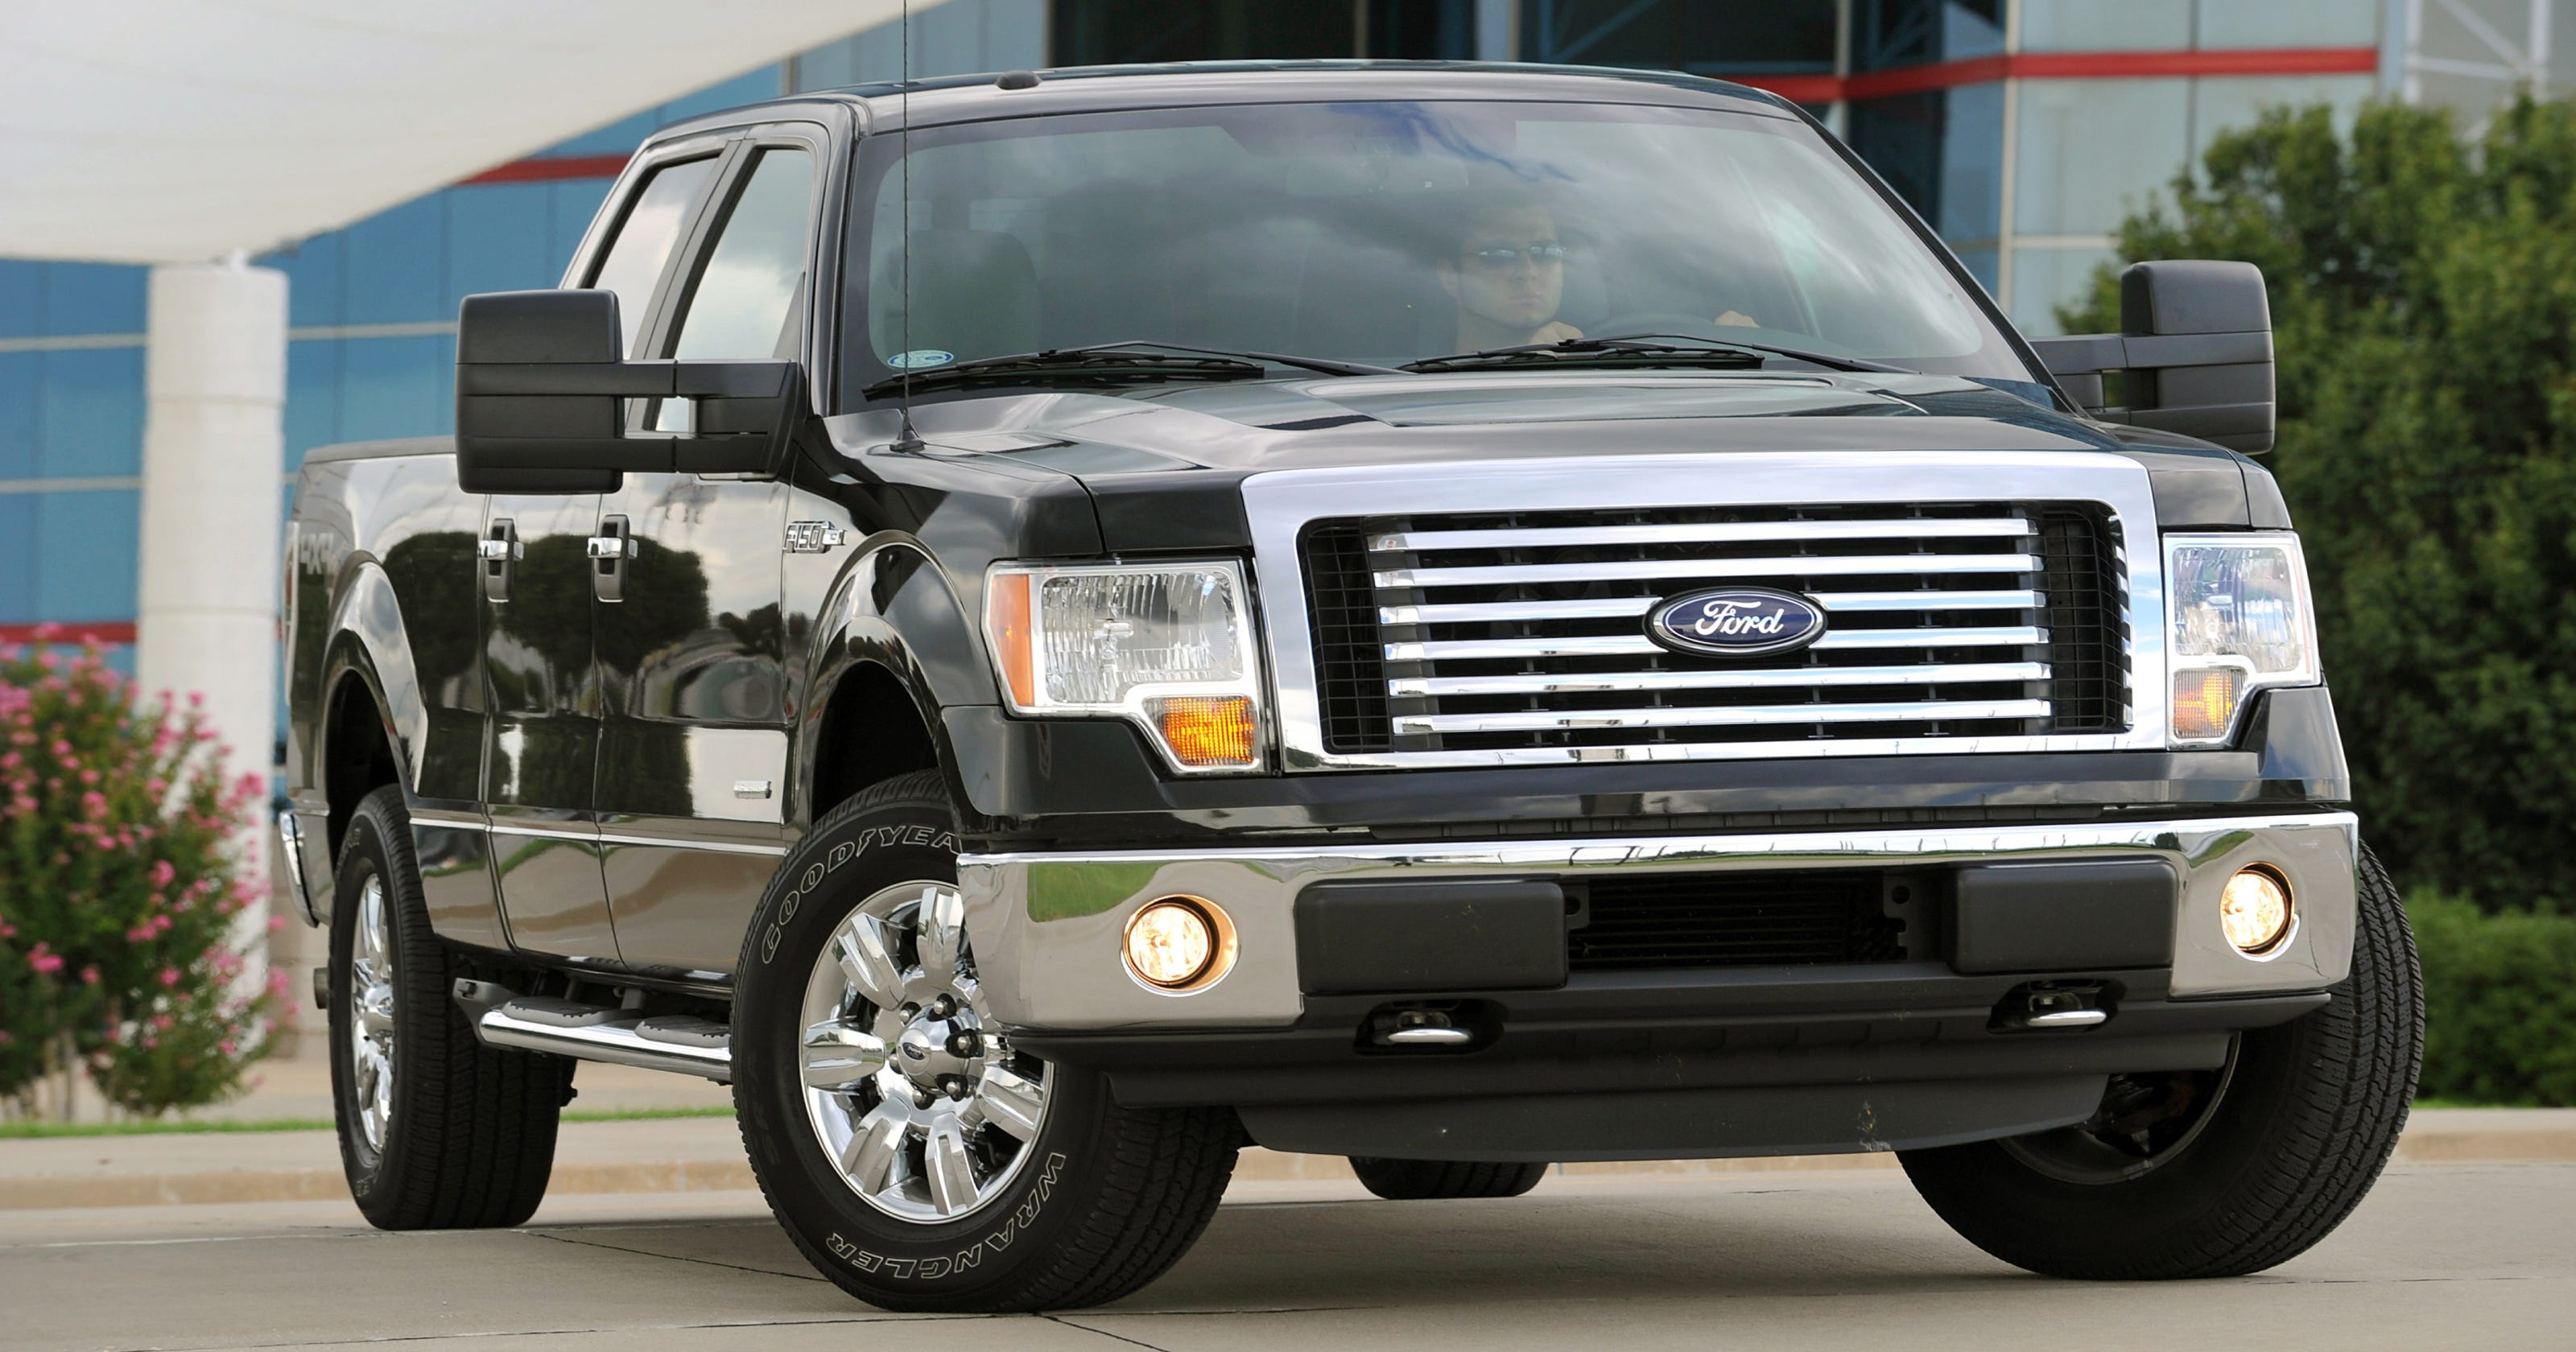 Ford F-150 recalls pickups due to loss of control, accidents